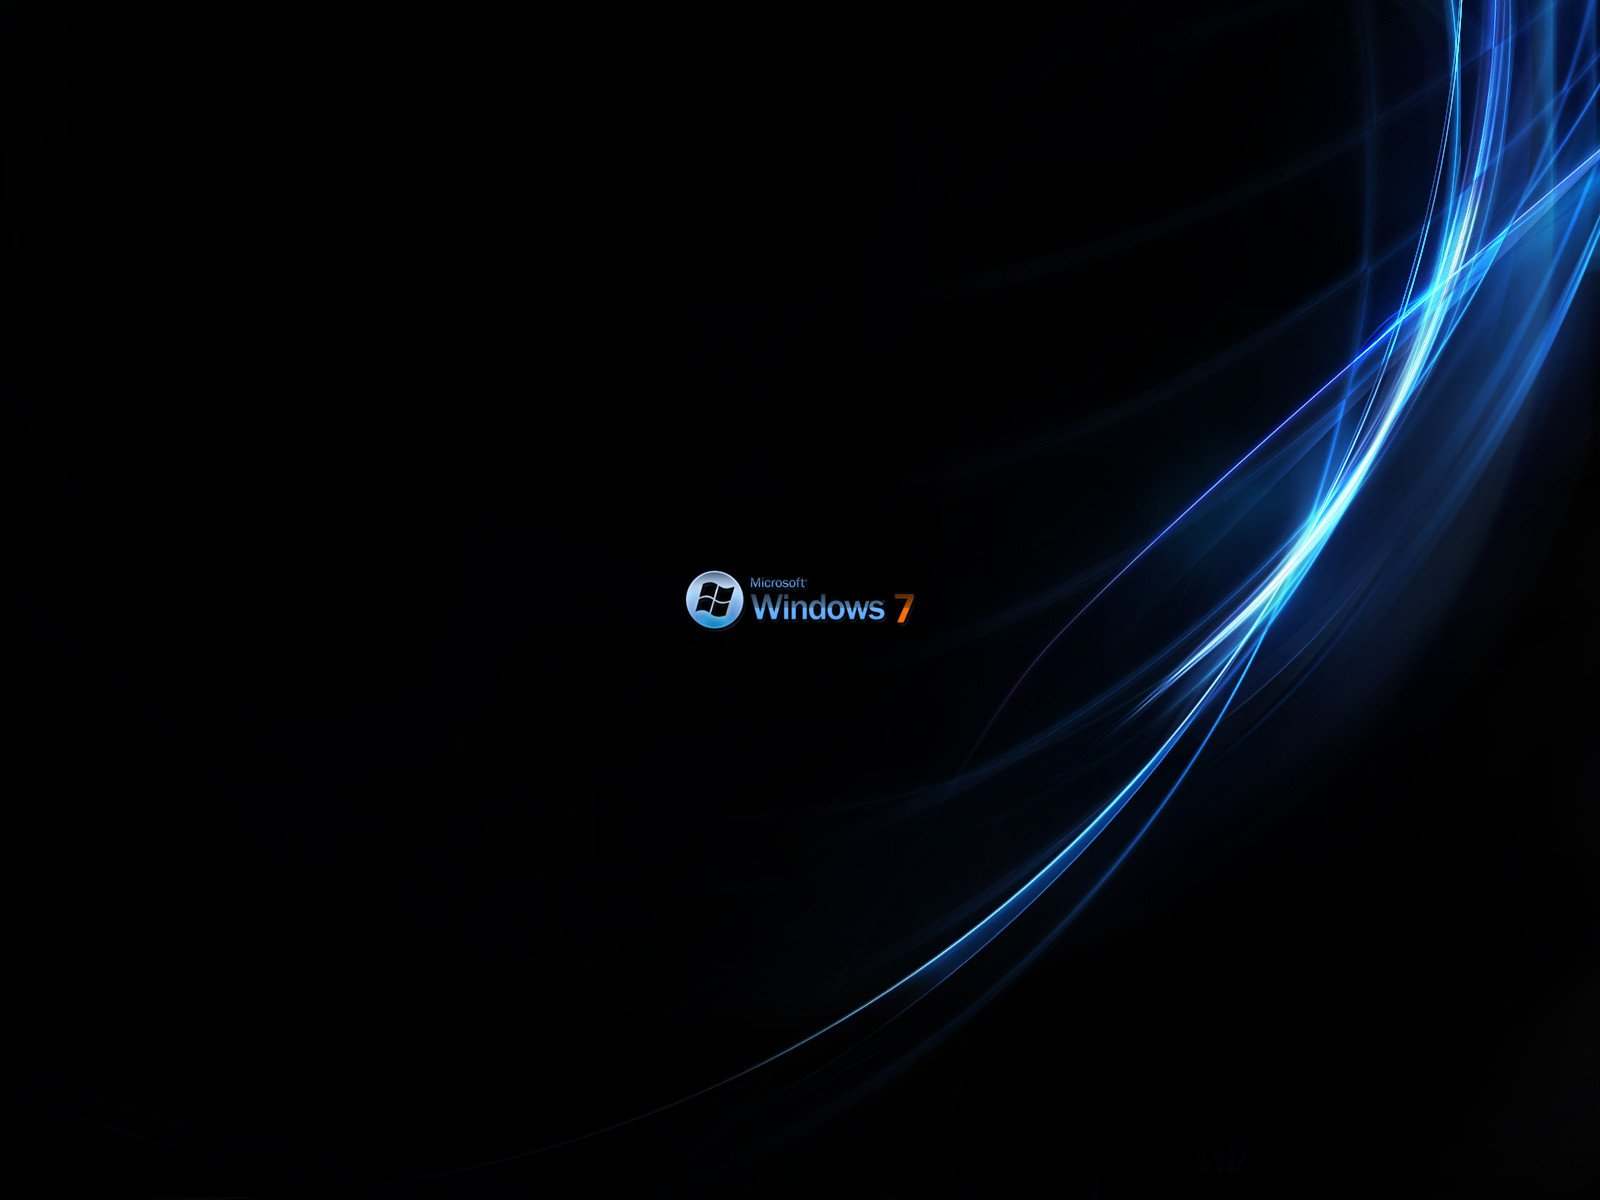 78 Windows 7 Hd Wallpapers Background Images Wallpaper Abyss